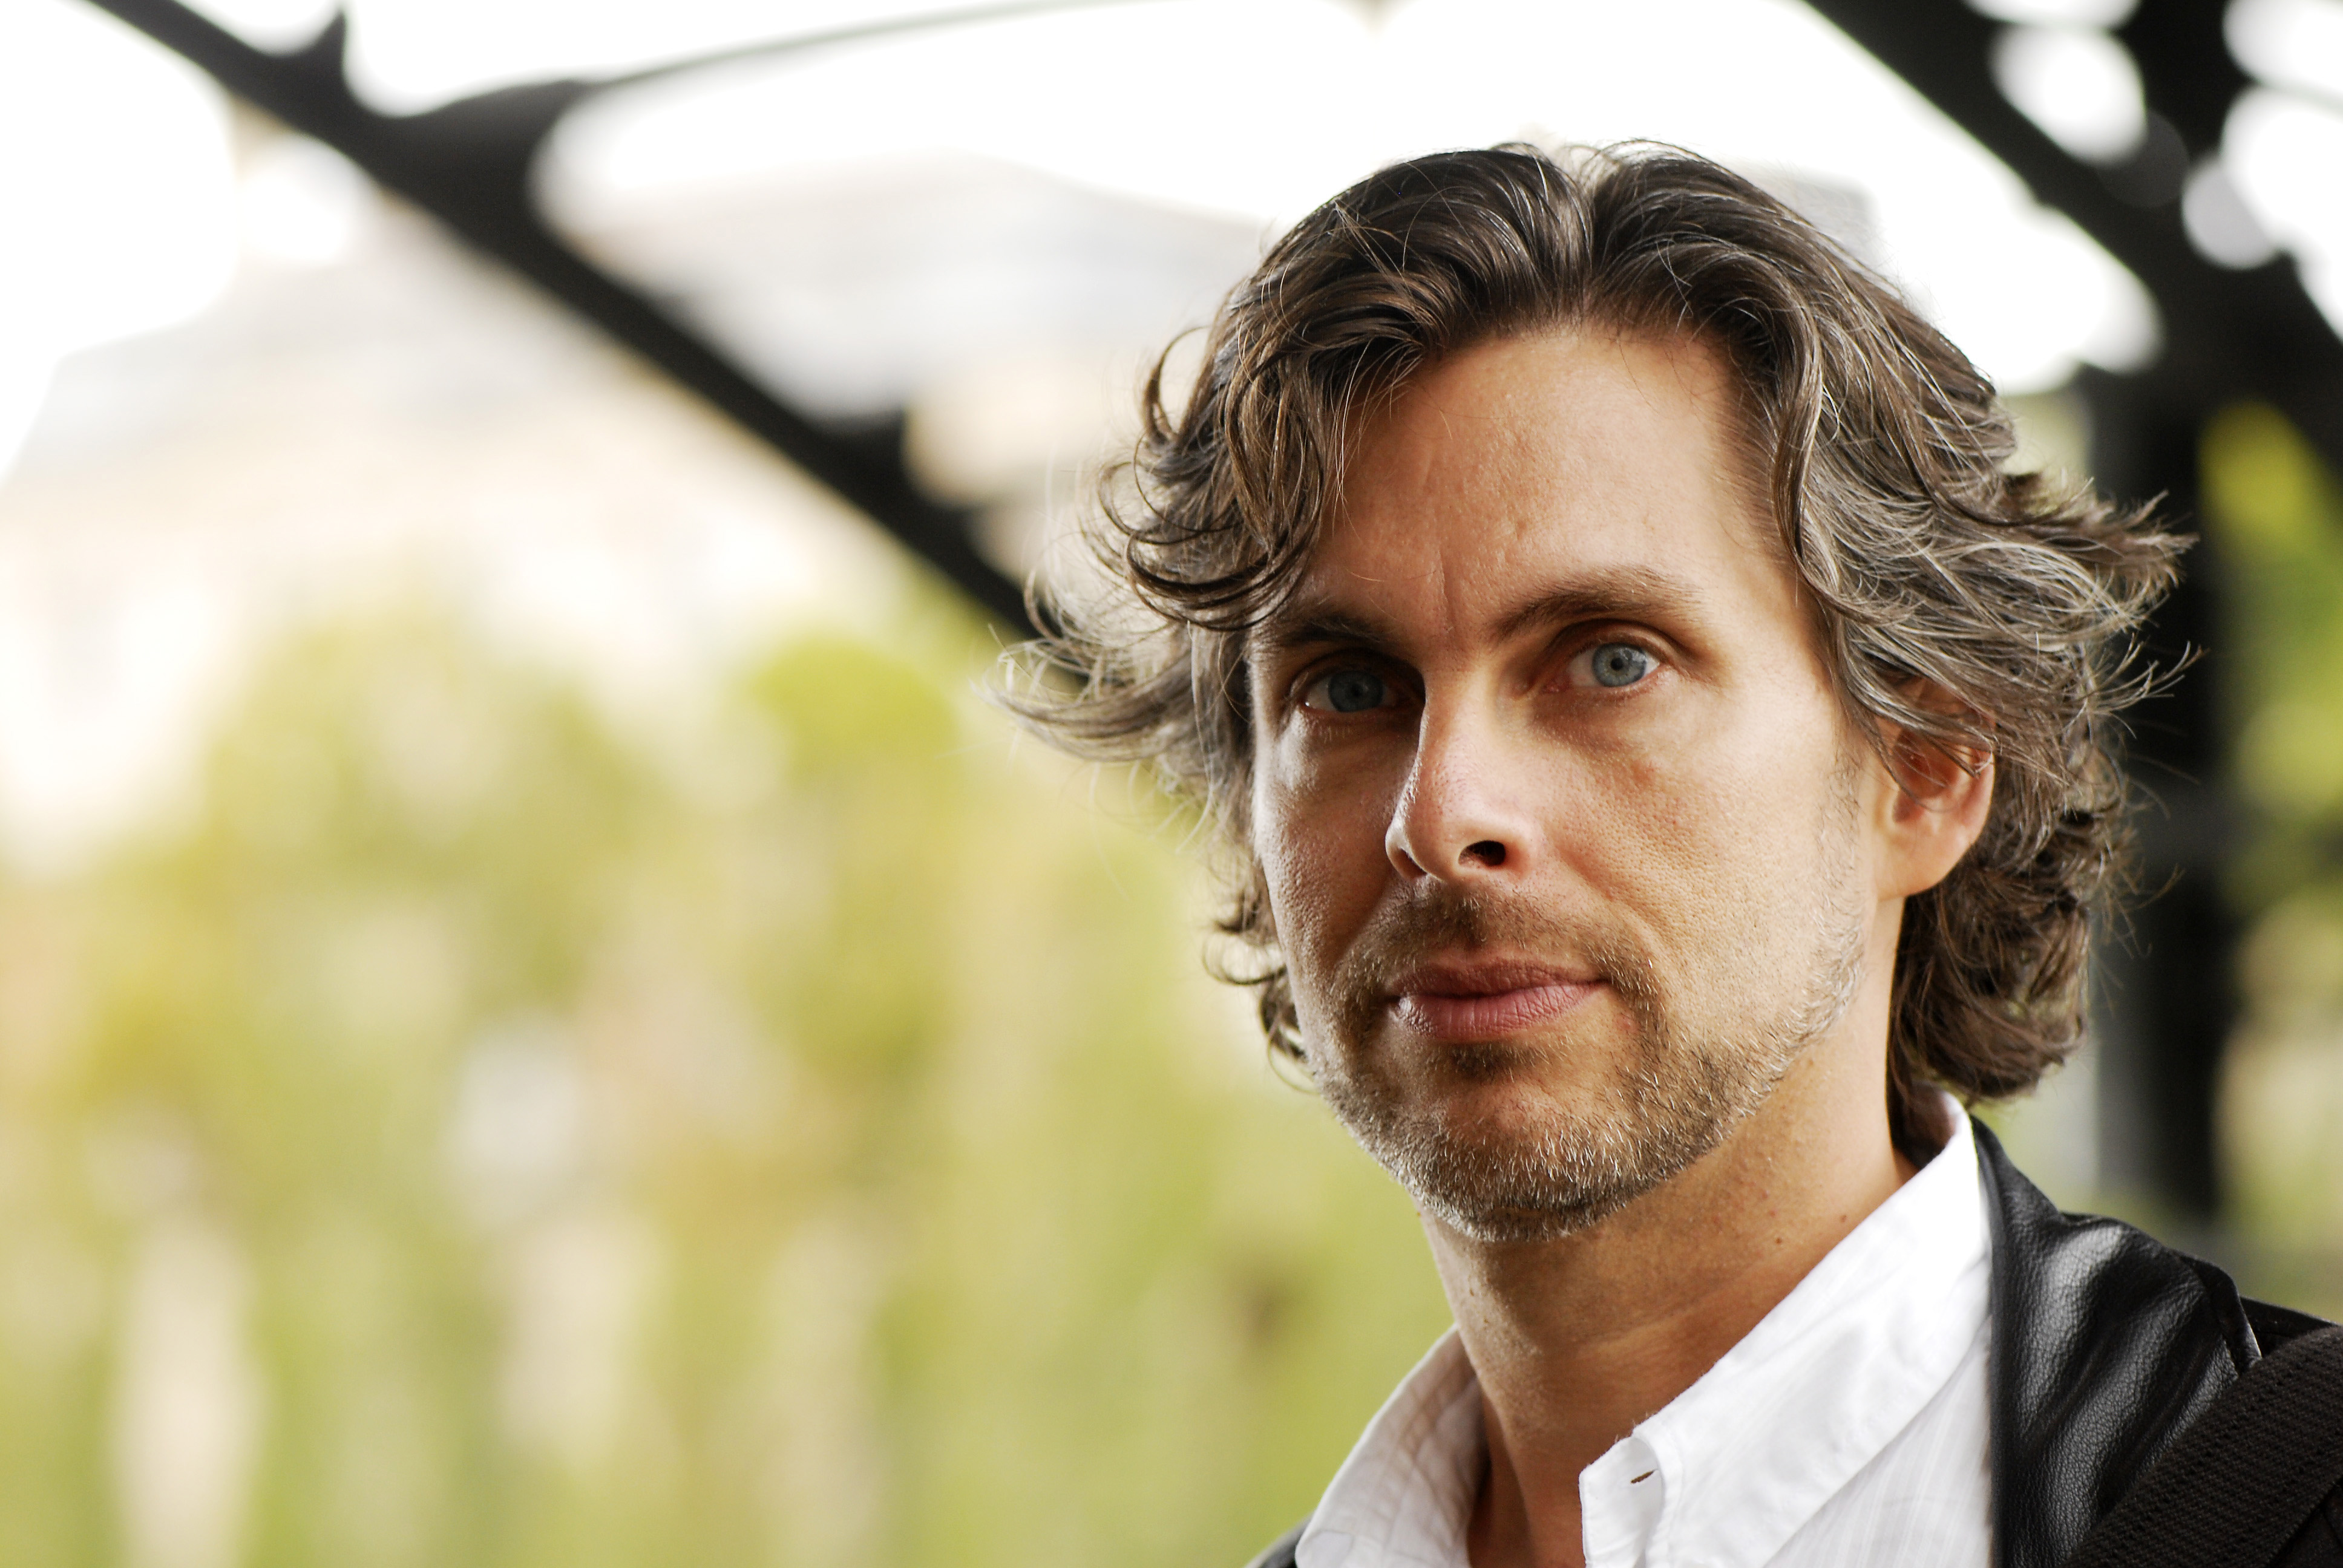 Chabon credit Ulif Andersen Getty Images